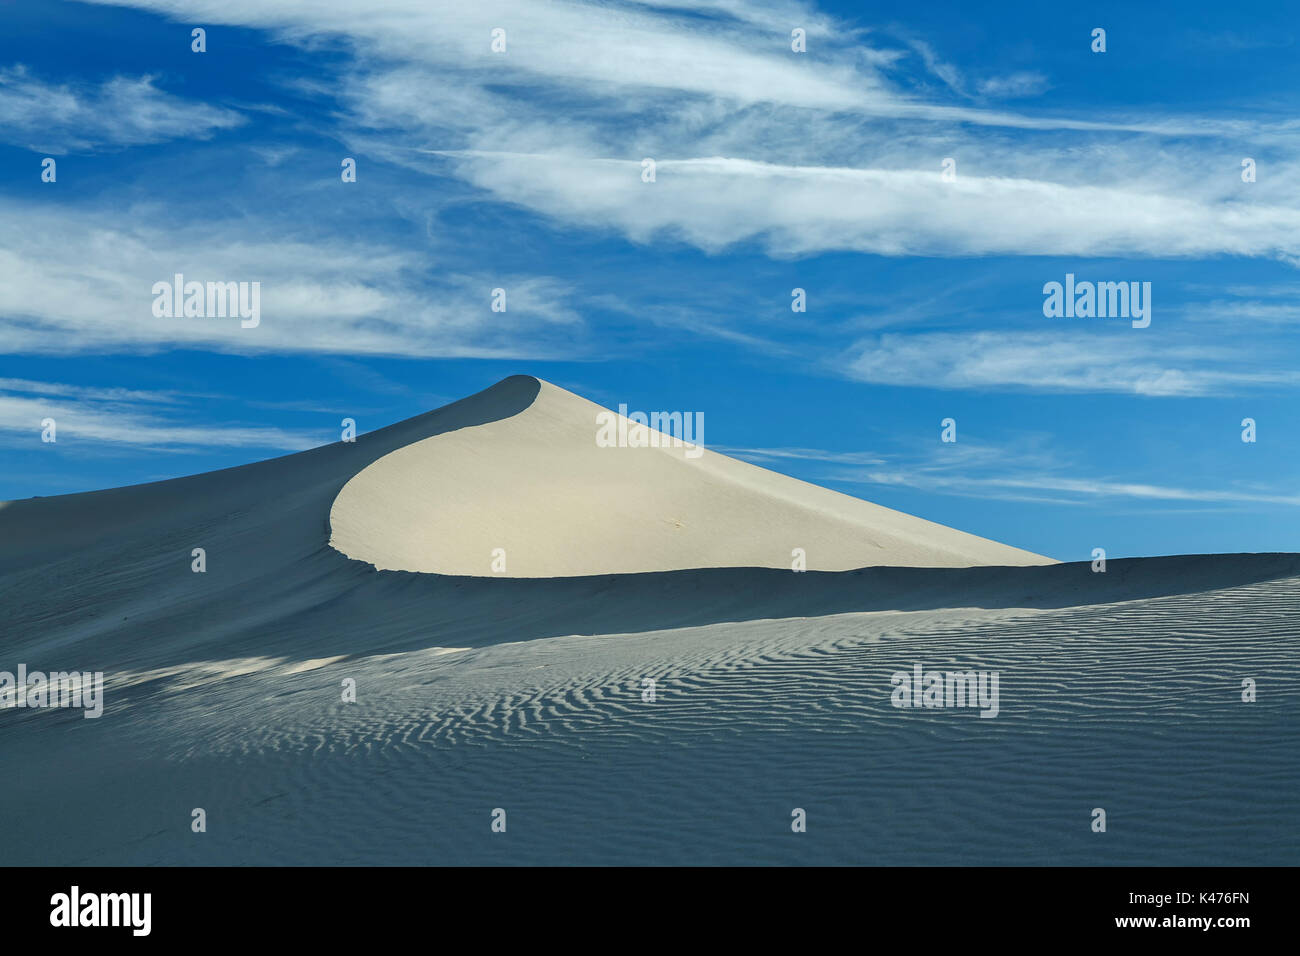 Mesquite Flat Sand Dunes, Death Valley National Park, California USA - Stock Image